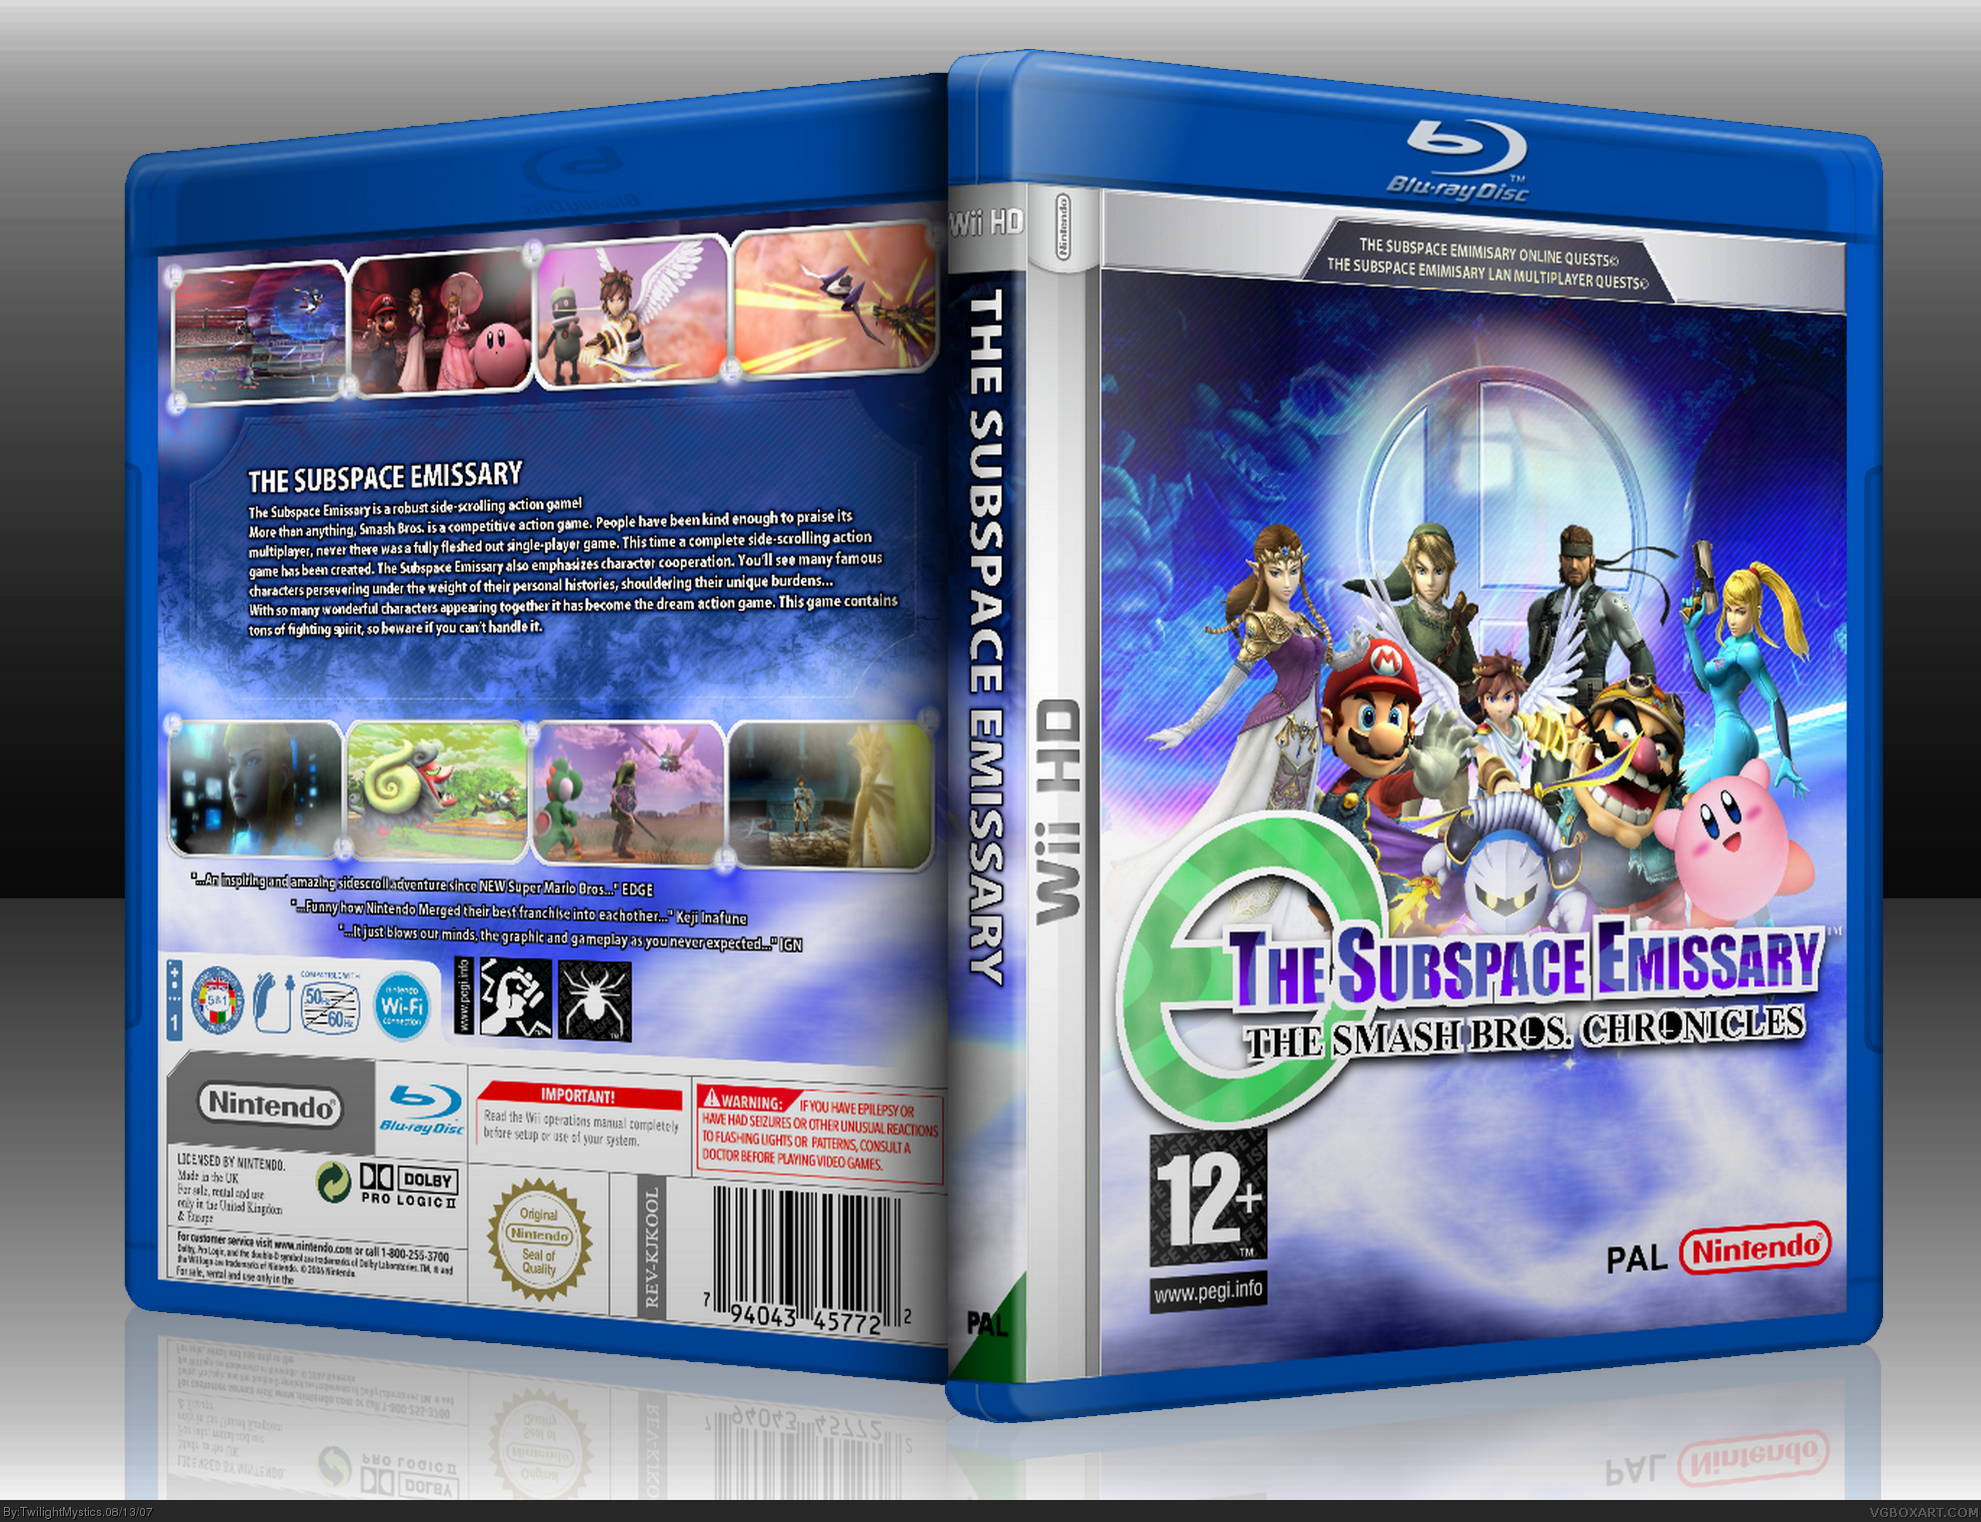 The Subspace Emissary Wiihd Wii Box Art Cover By